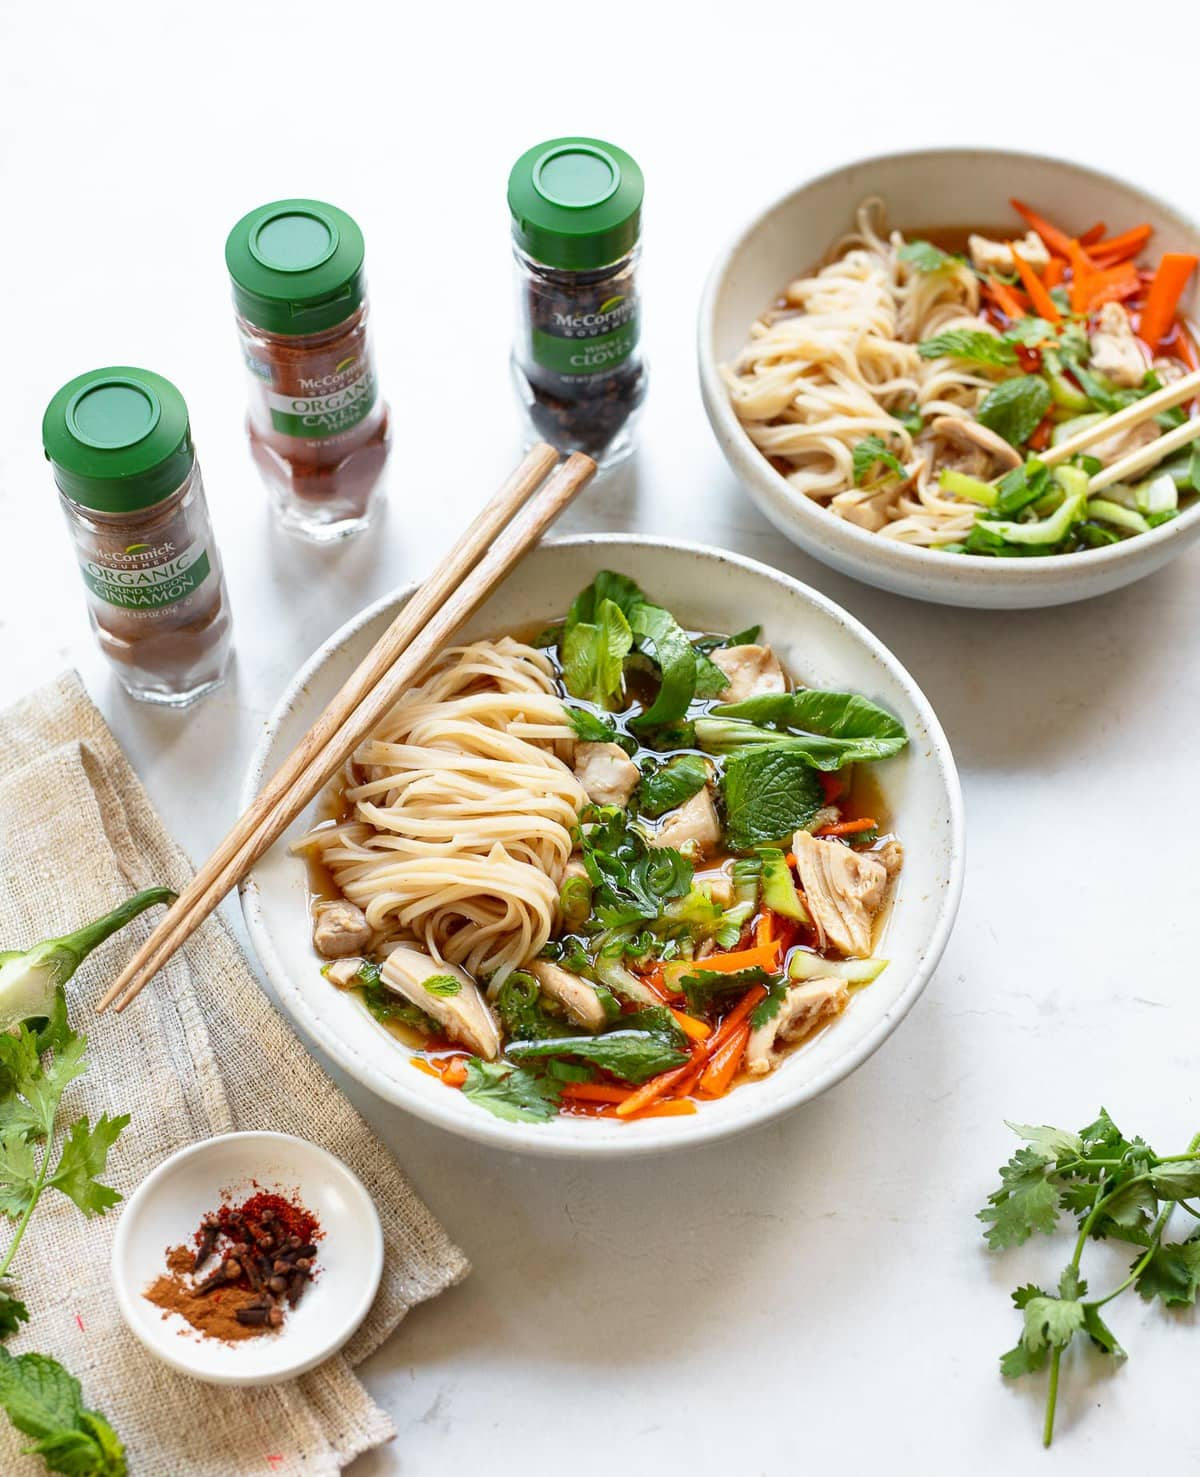 Chicken Pho Noodle Bowl image showing rice noodles, shredded chicken, carrots and herb leaves in spiced chicken broth in a soup bowl, with chopsticks on the side